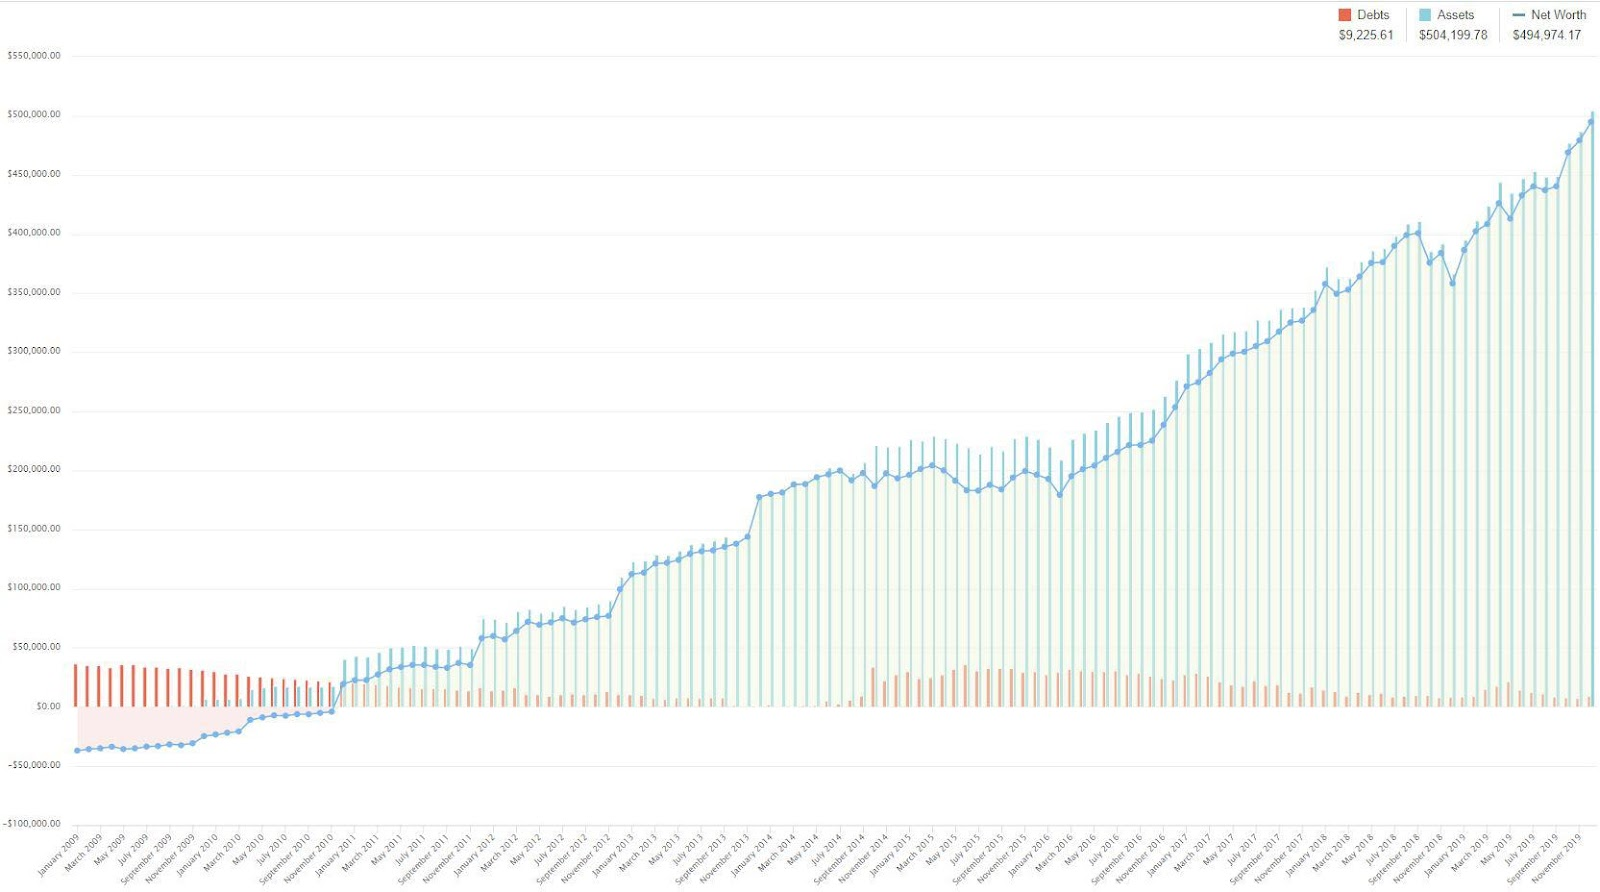 Is YNAB Worth the Cost? One YNAB user increased his net worth to almost half a million dollars in 10 years.